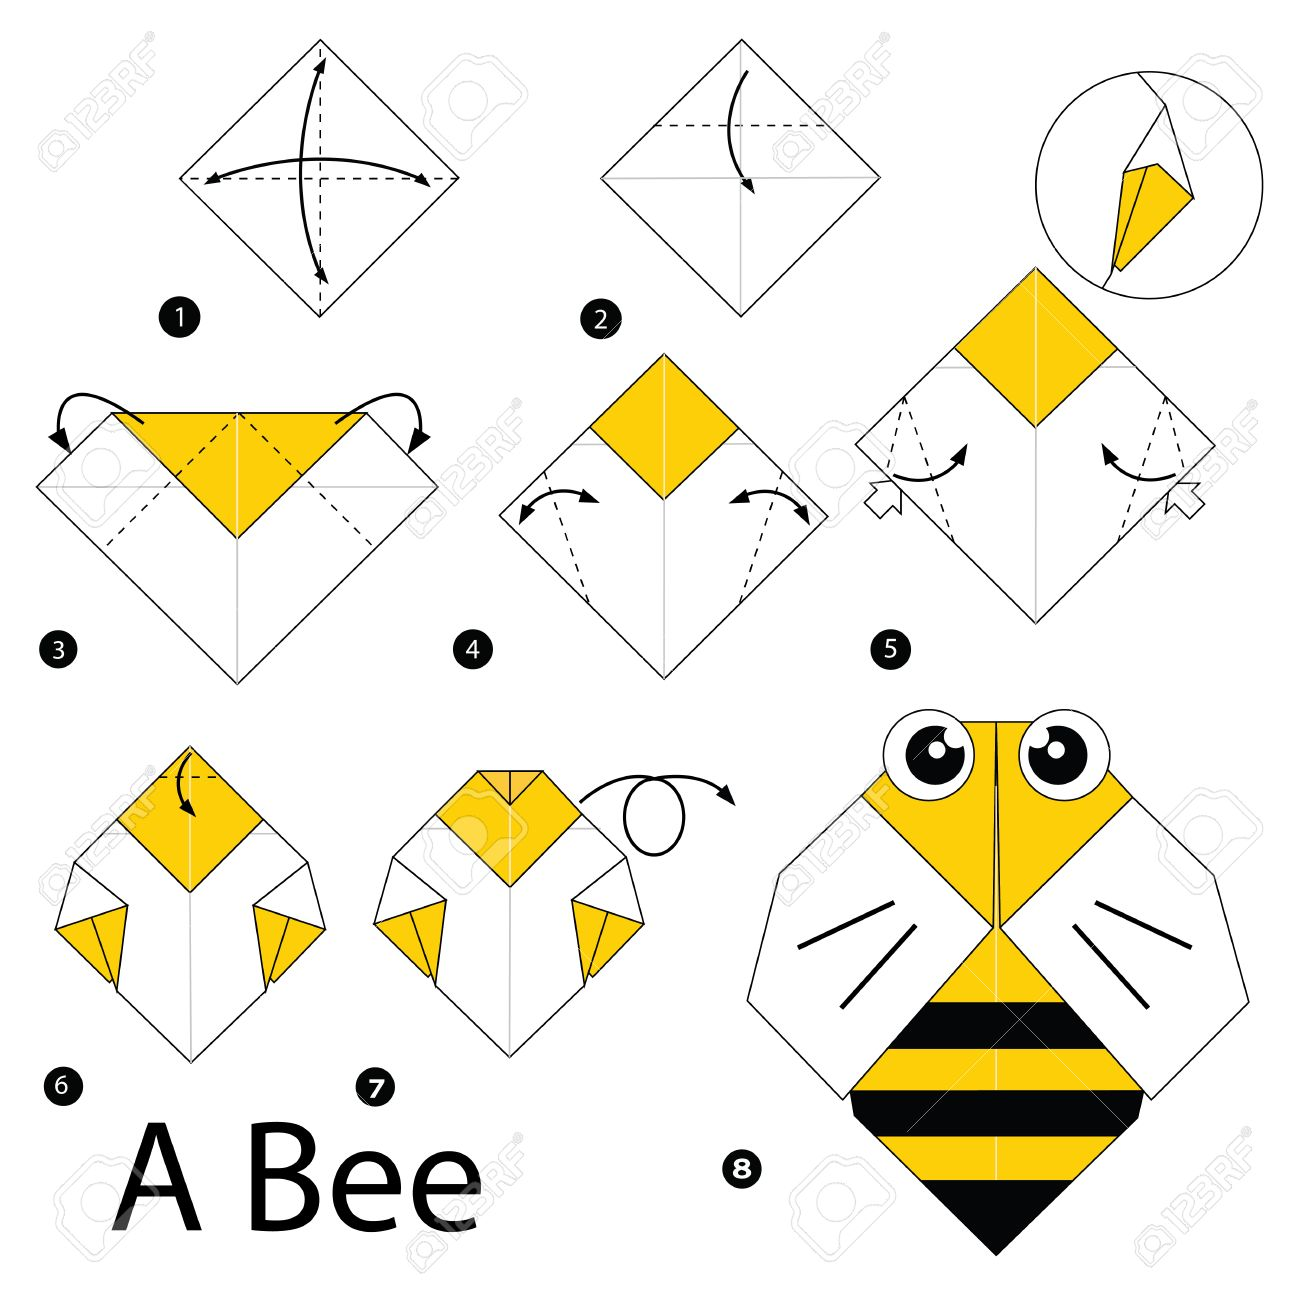 Step By Step Instructions How To Make Origami A Bee Royalty Free